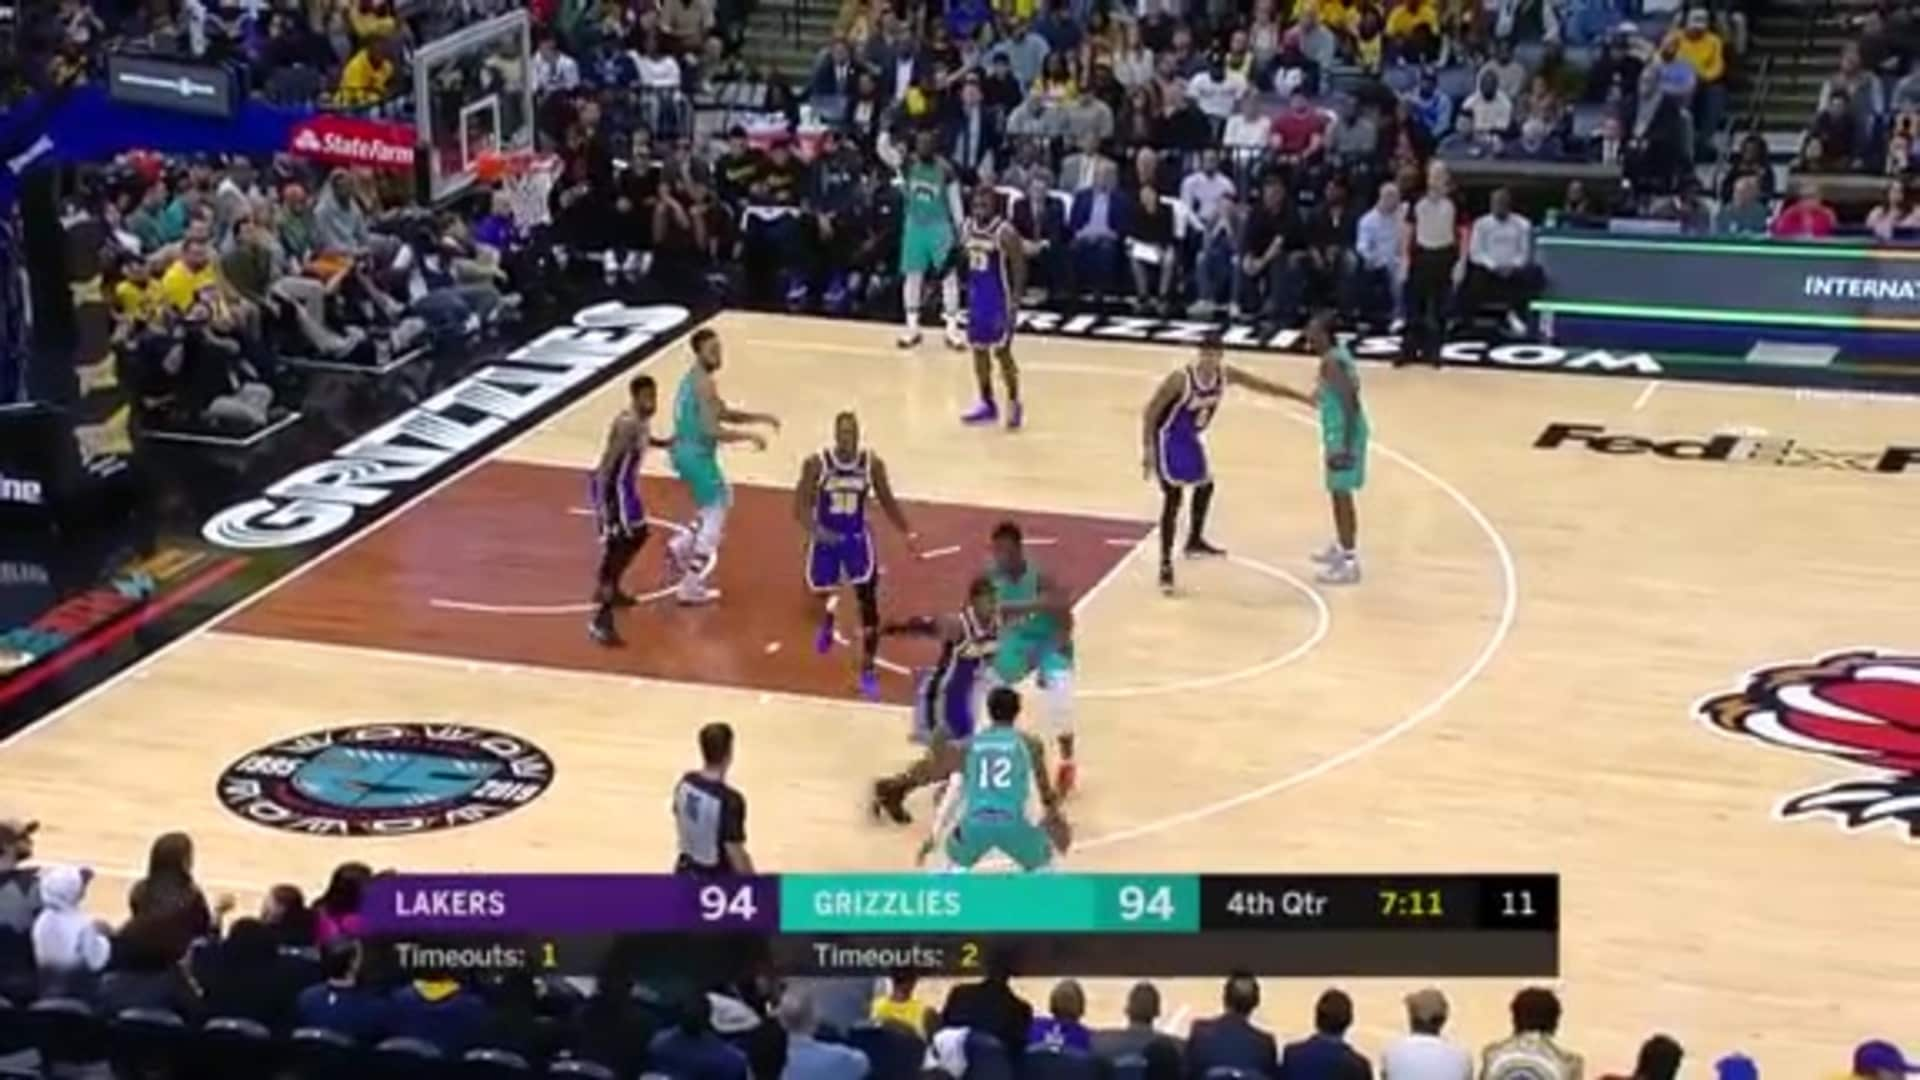 Grizzlies vs. Lakers highlights 11.23.19